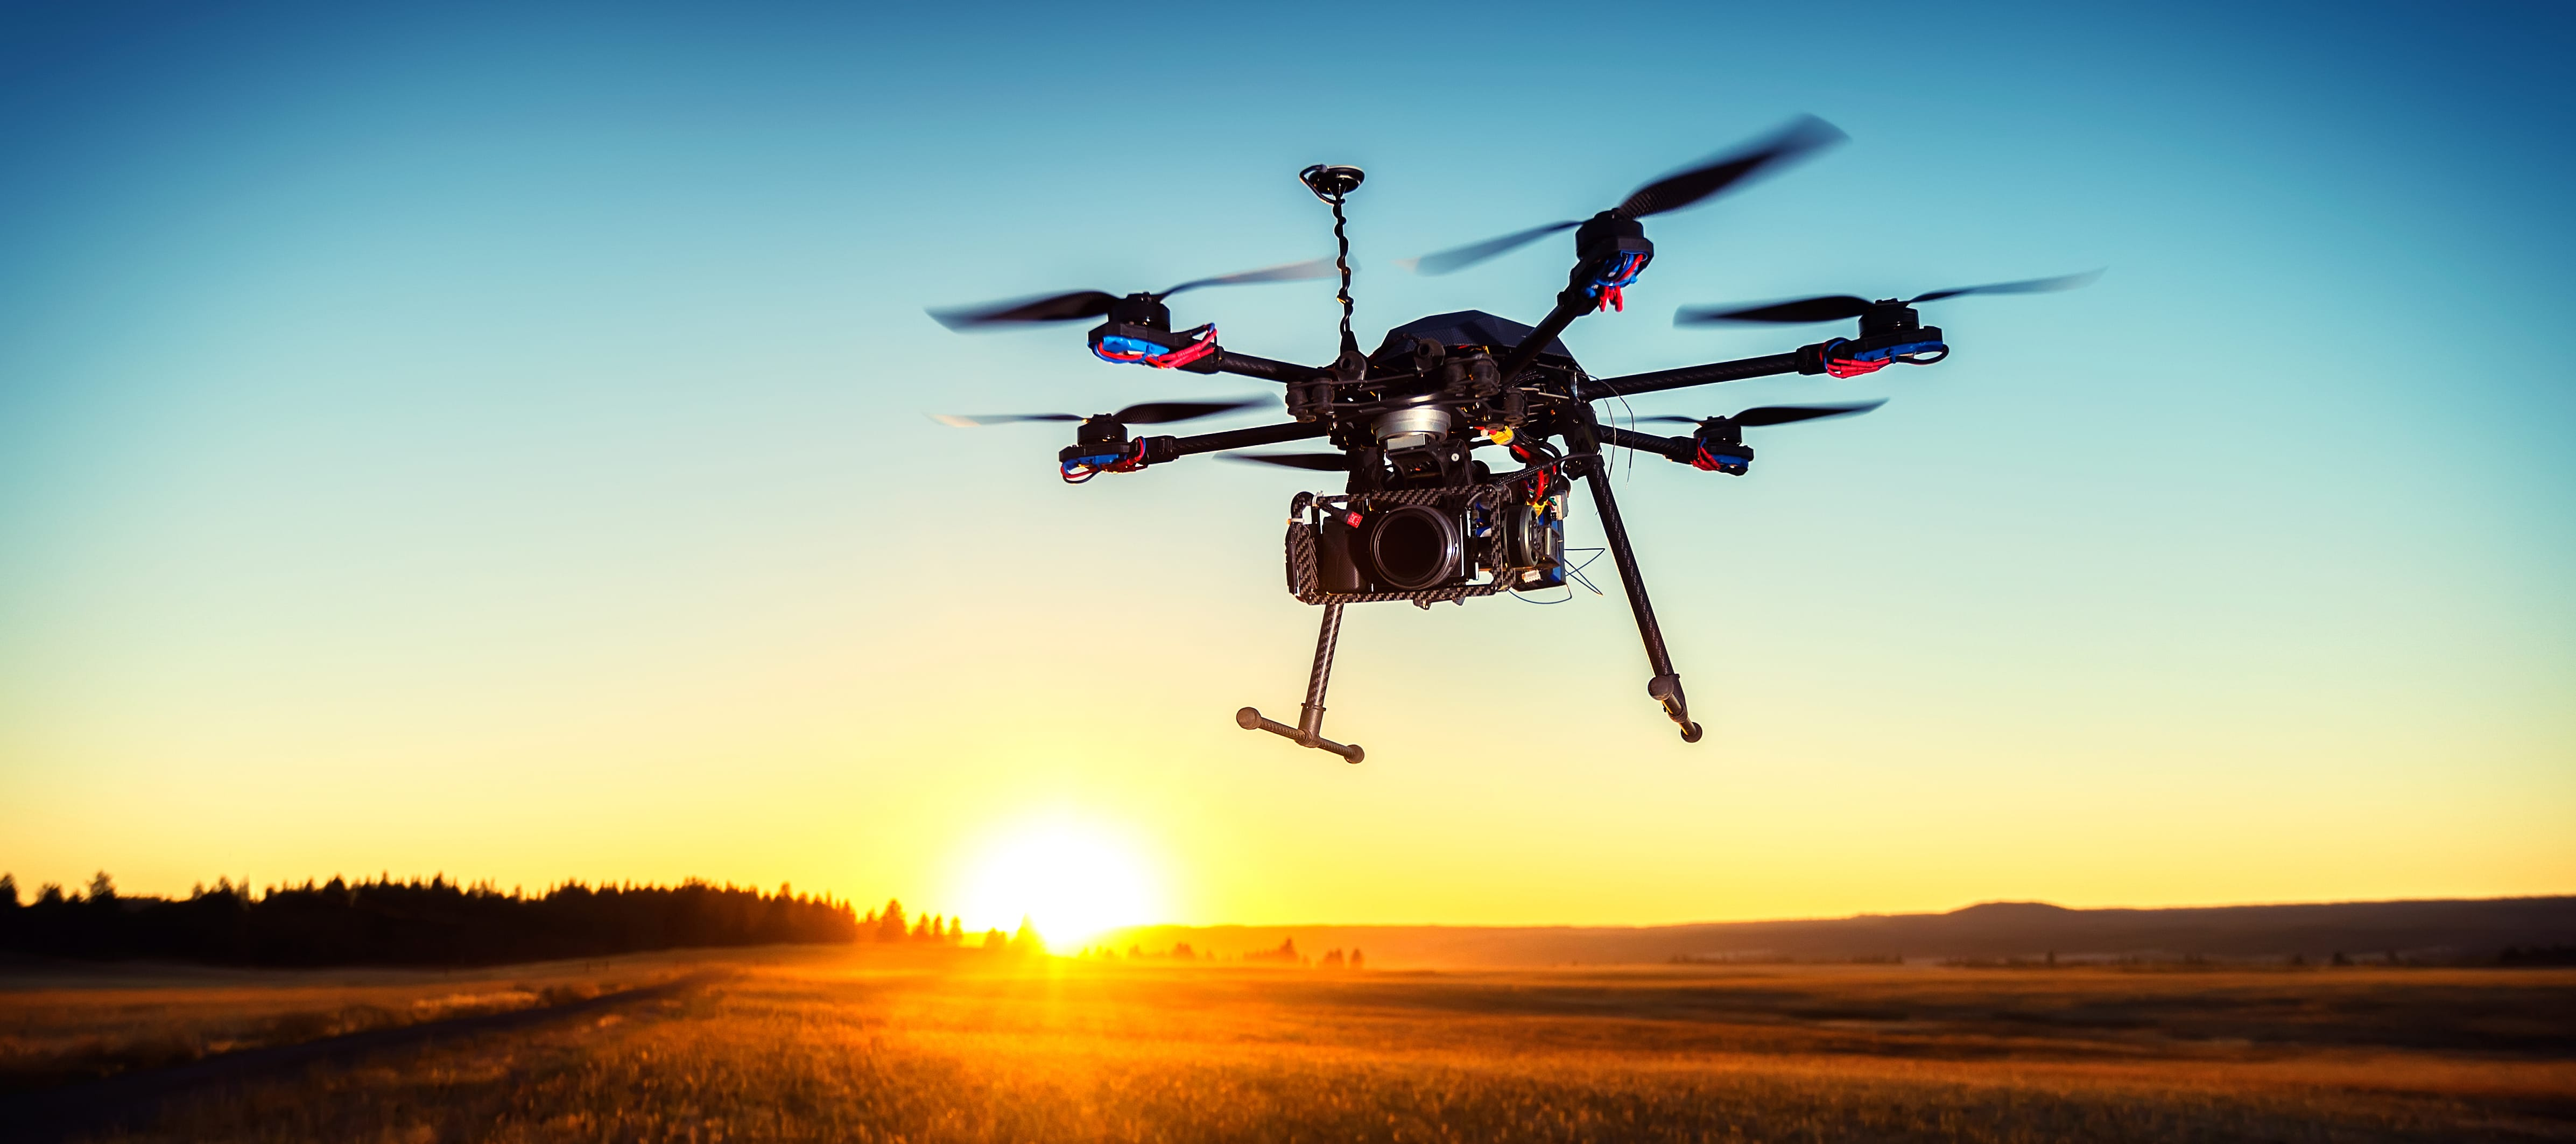 Insights for Your Industry™ - Drones: The risks and rewards: Drones: The risks and rewards